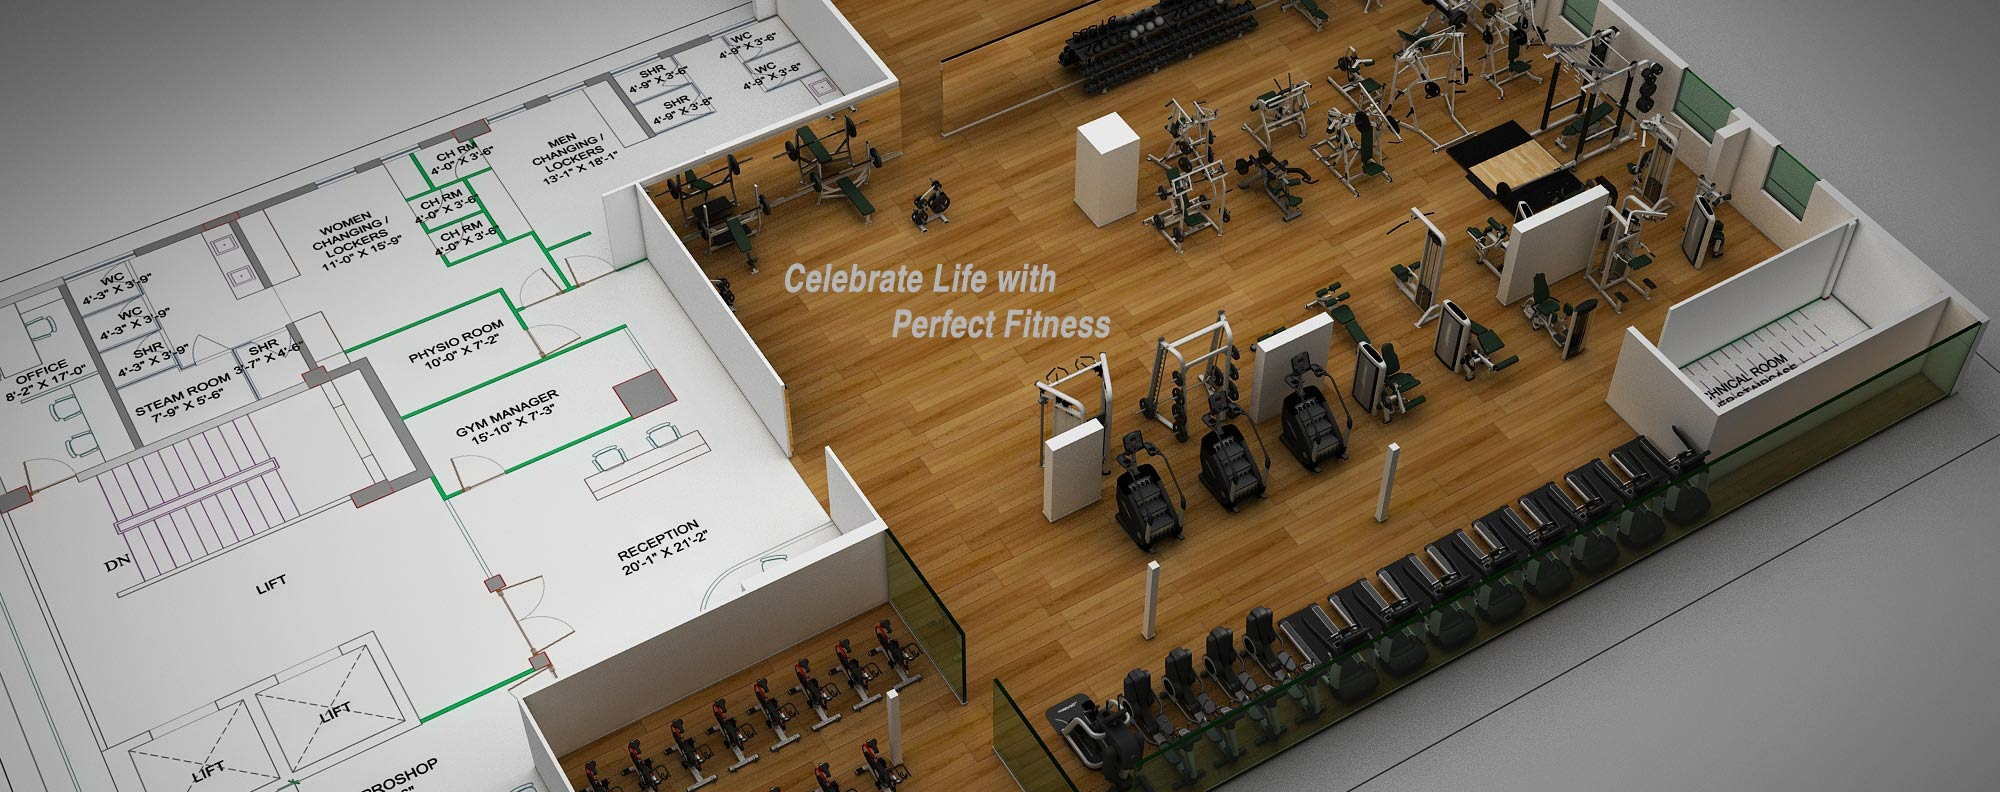 Commerical & Home Gym Interior Design Ideas in India ...